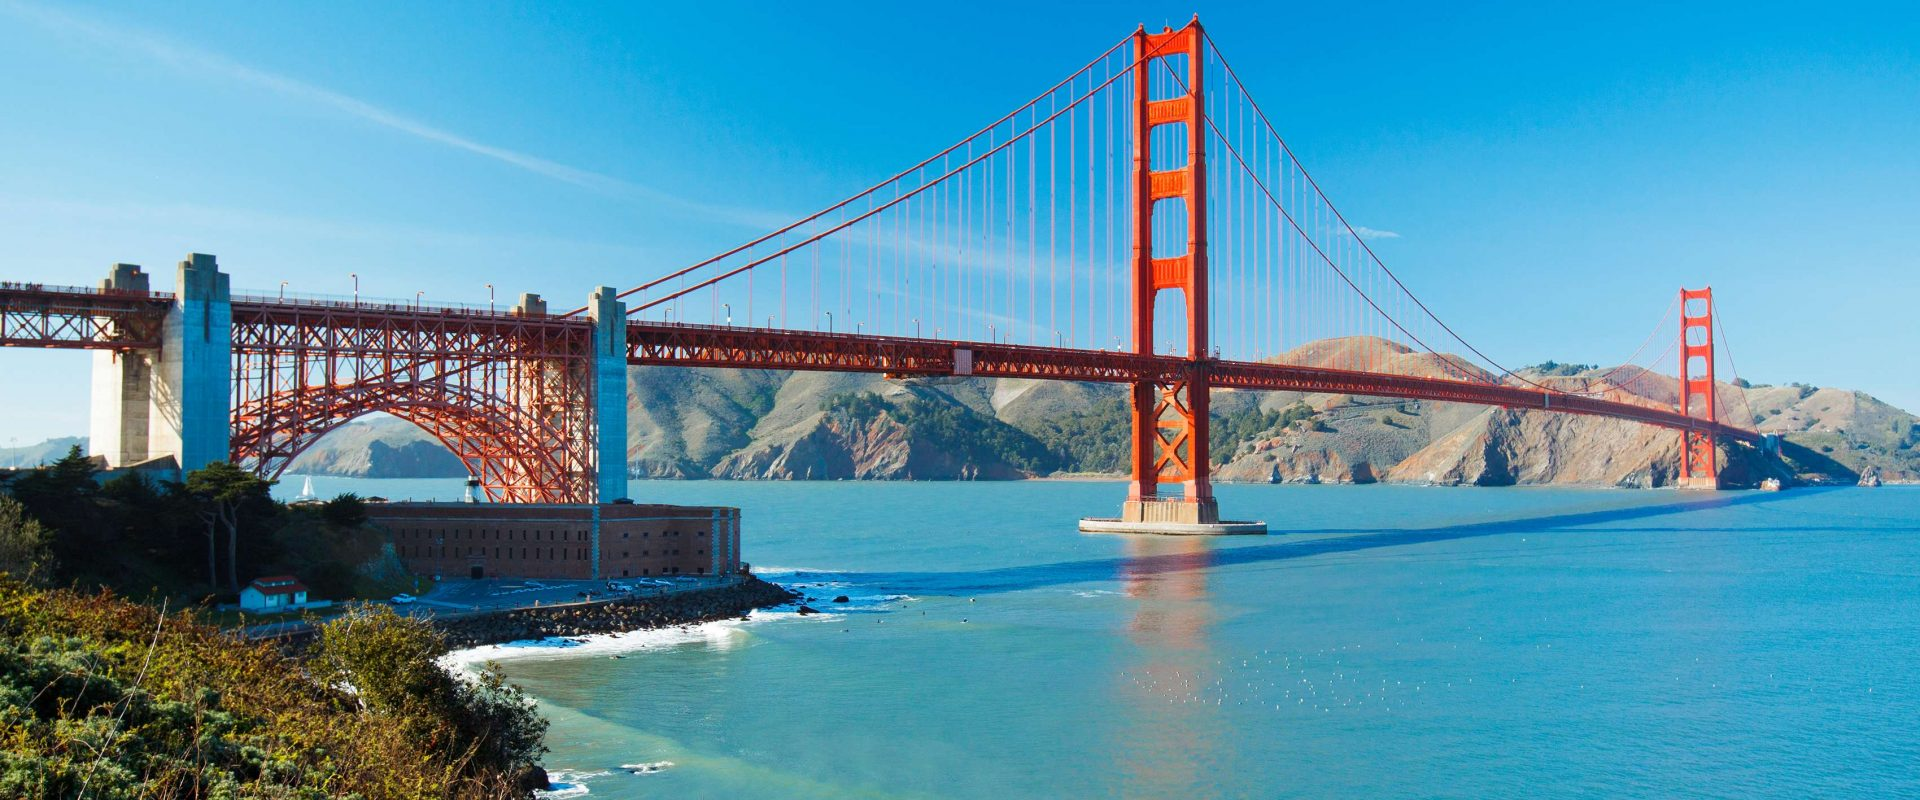 The Golden Gate Bridge in San Francisco with beautiful blue ocea